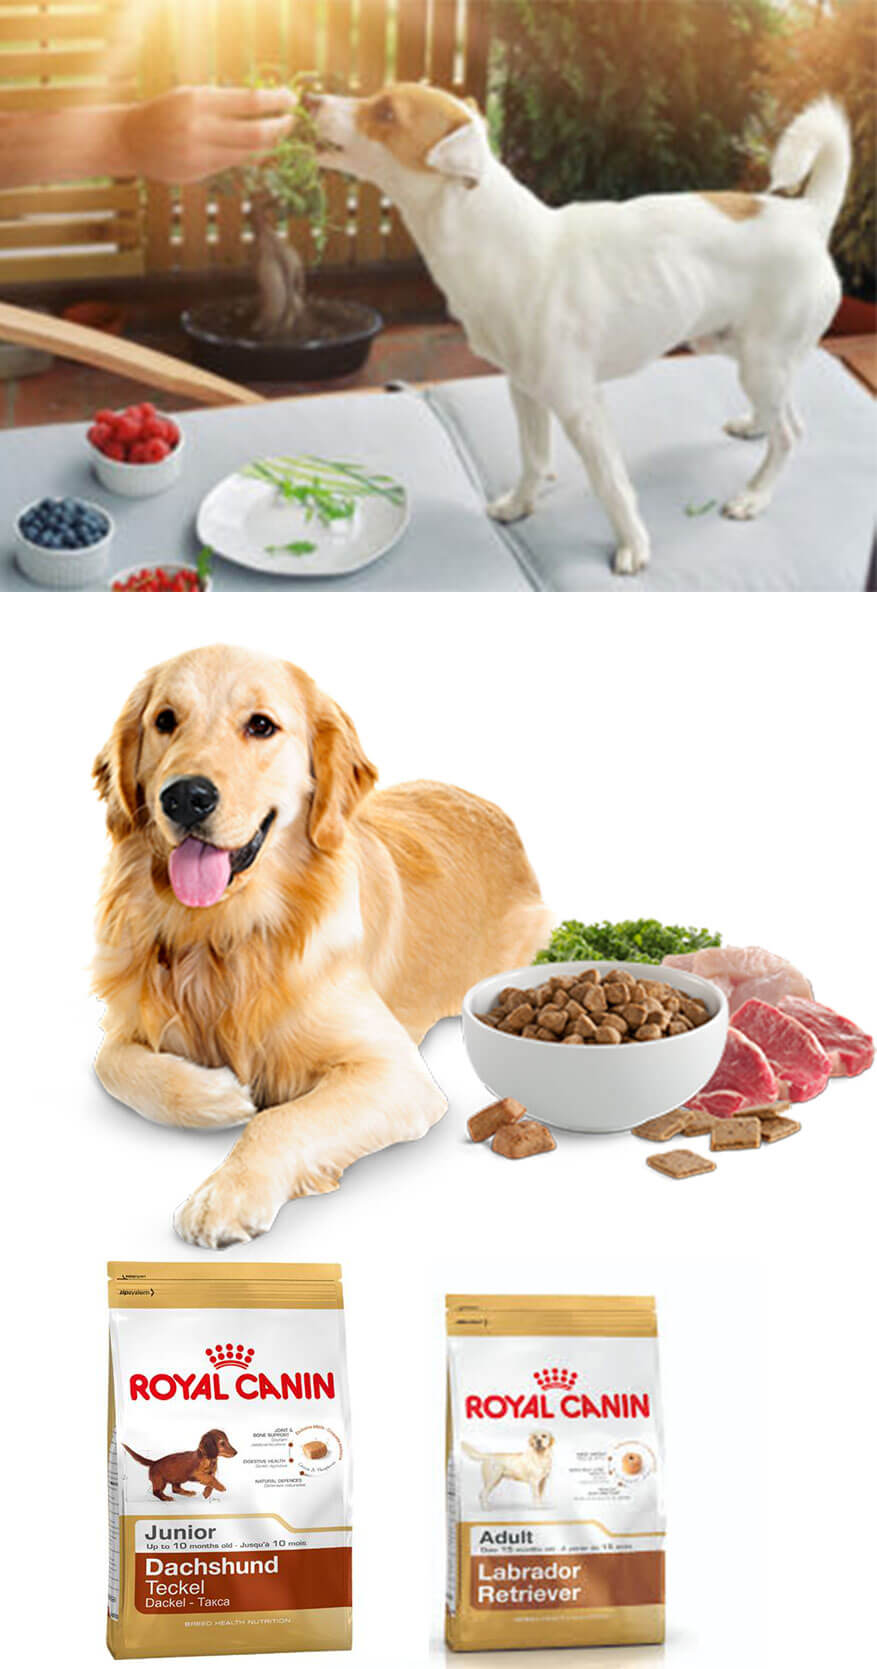 5 Tips to Keep Your Dog Healthy and Happy